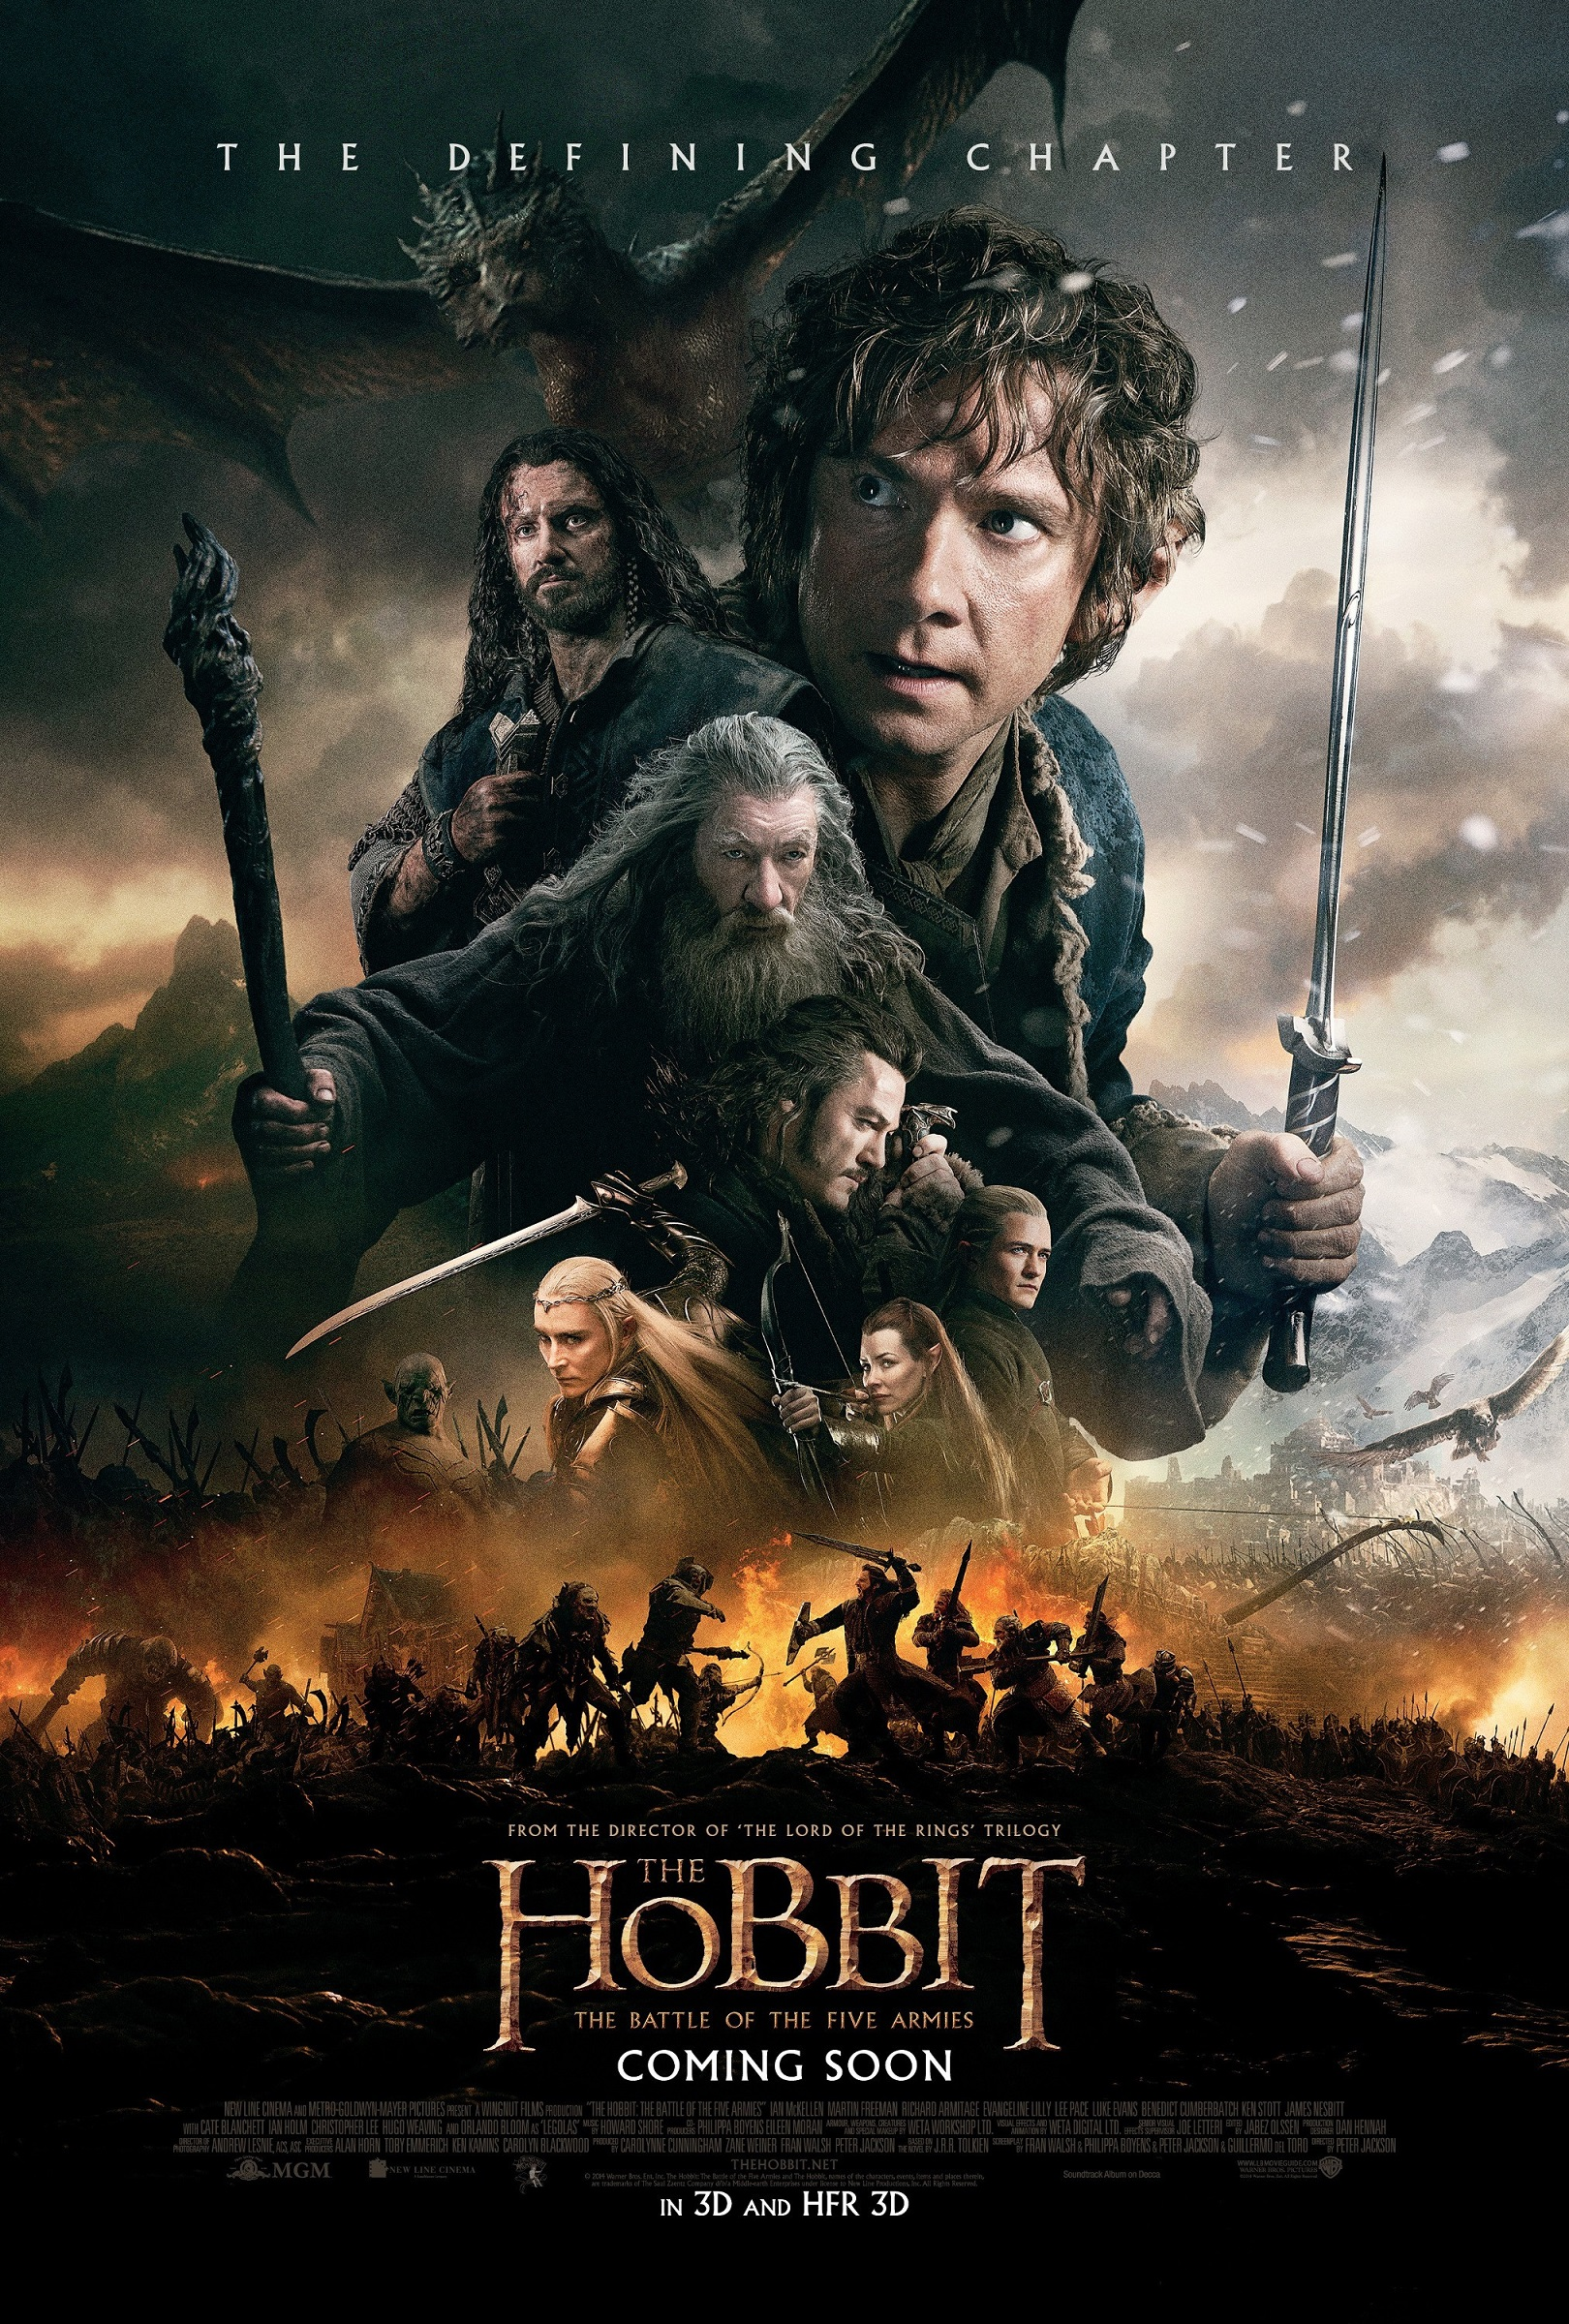 The Hobbit The Battle of the Five Armies-PROMO XXLG-24OUTUBRO2014